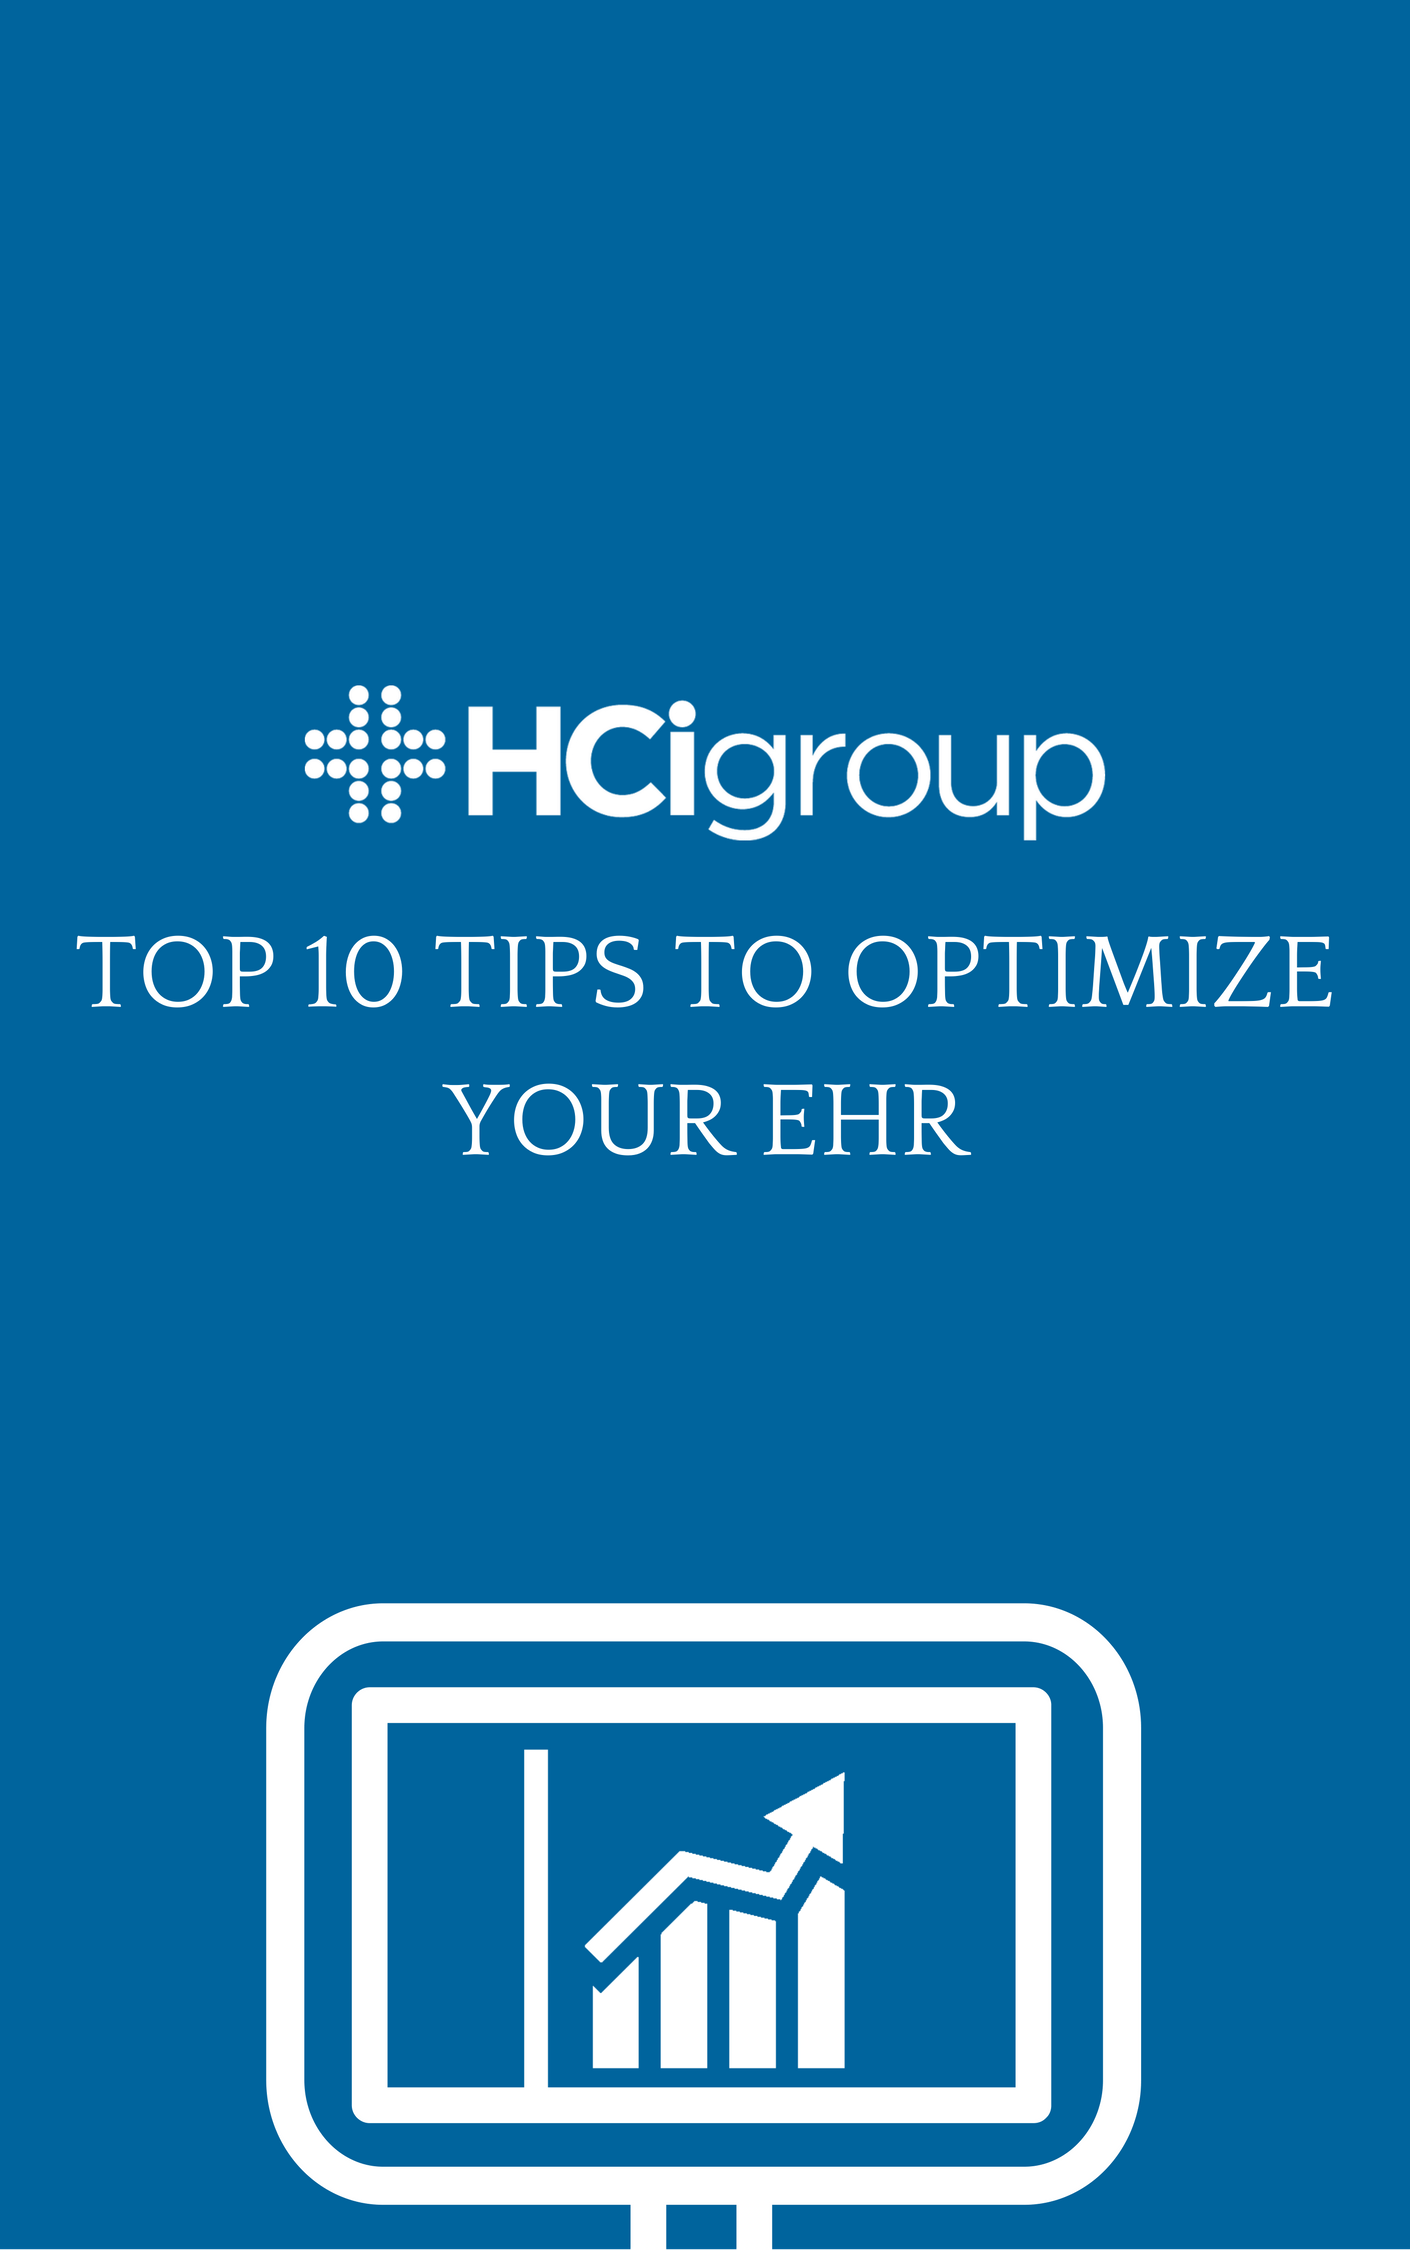 Download Top 10 Tips to Optimize Your EHR